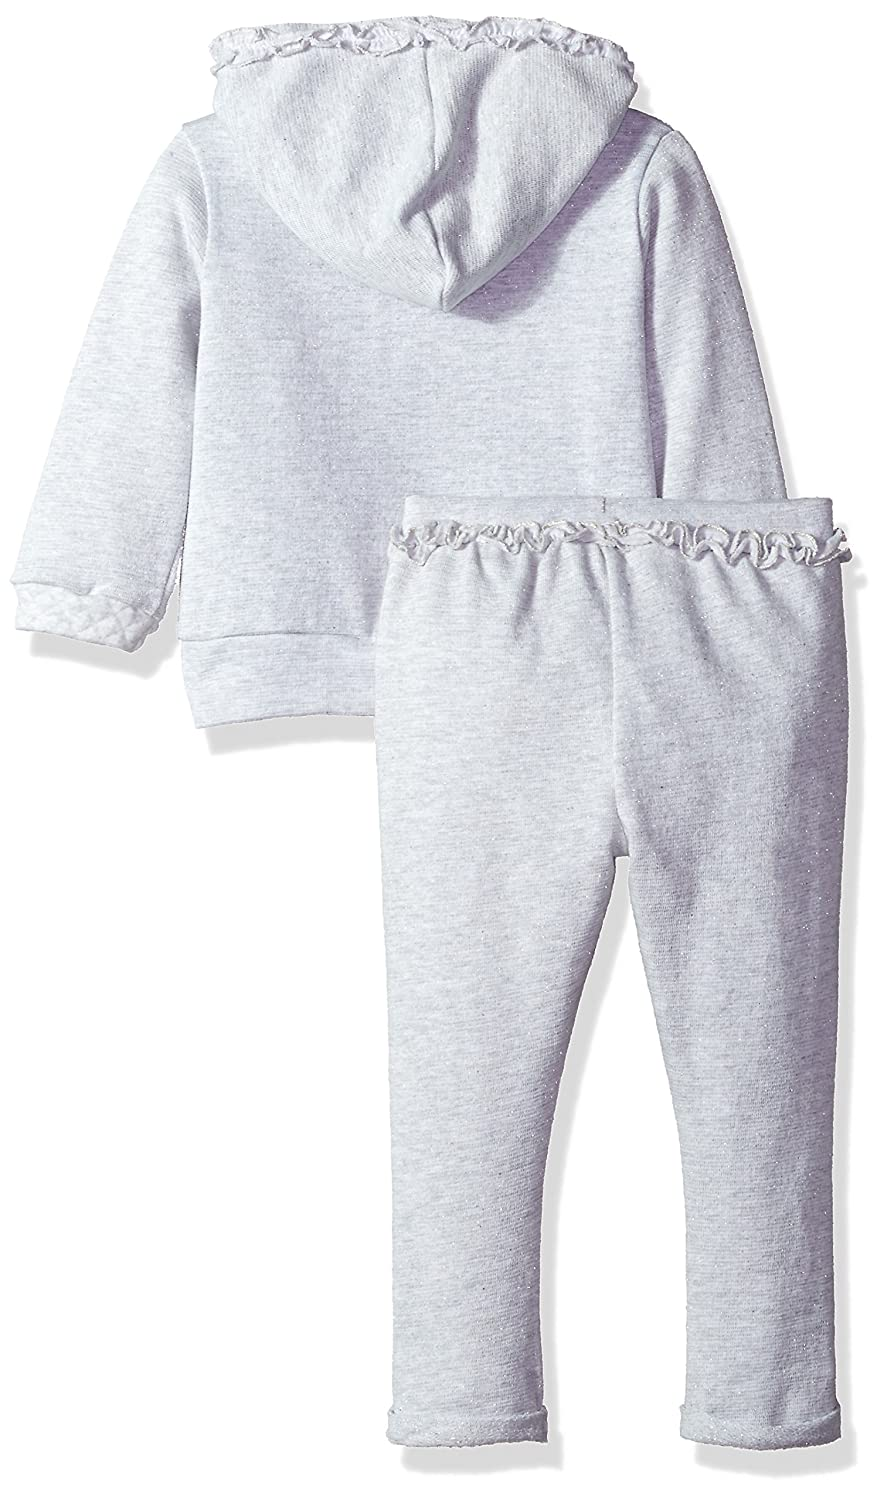 U.S Polo Assn Girls Toddler 2 Piece French Terry Set